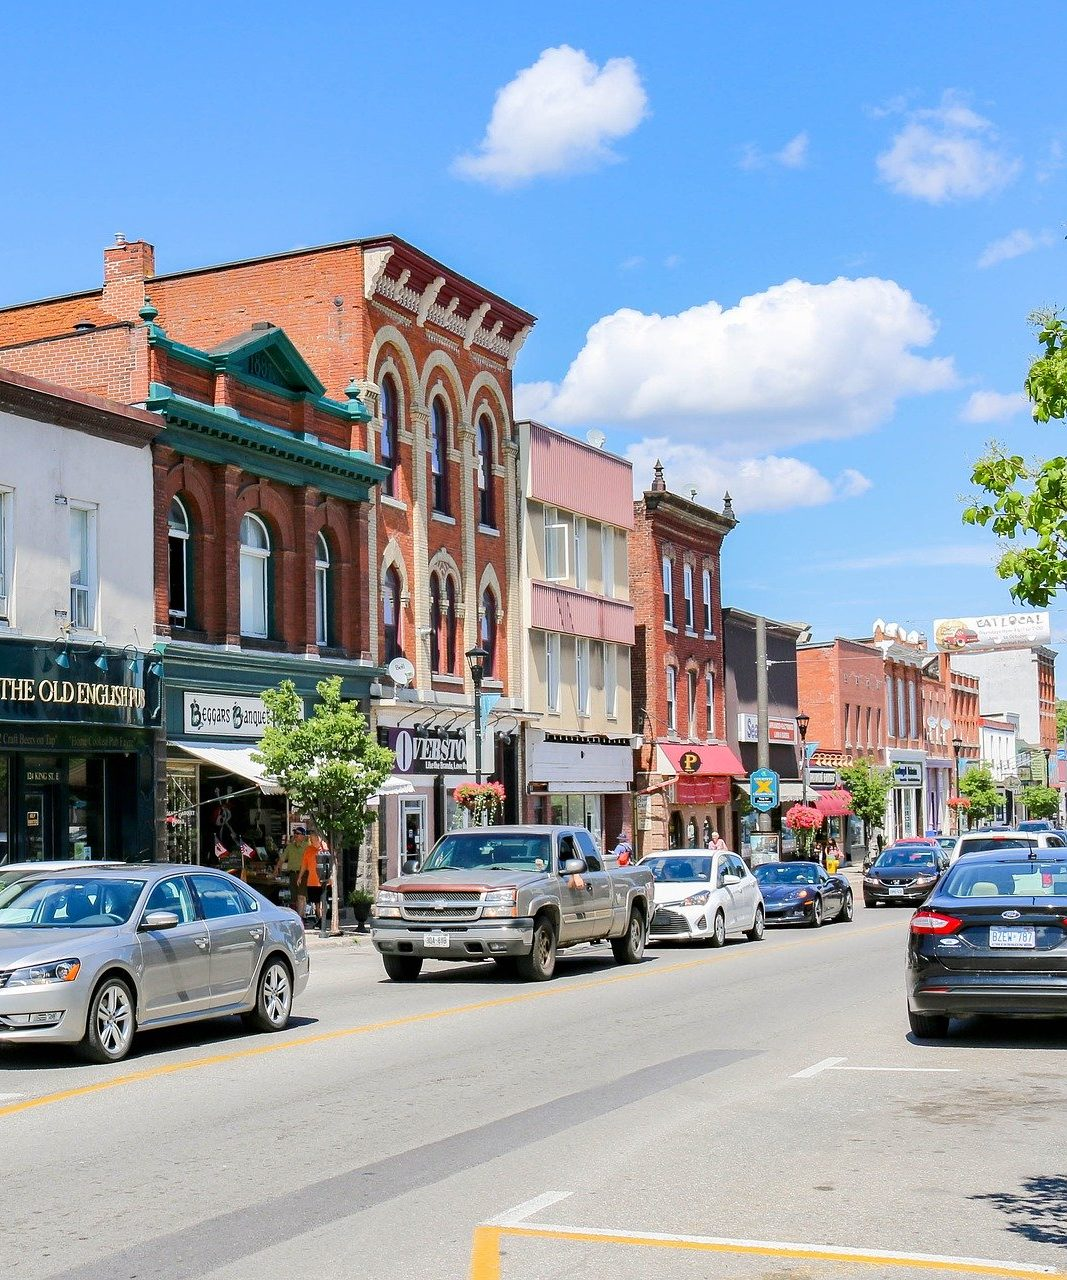 Image of downtown storefronts